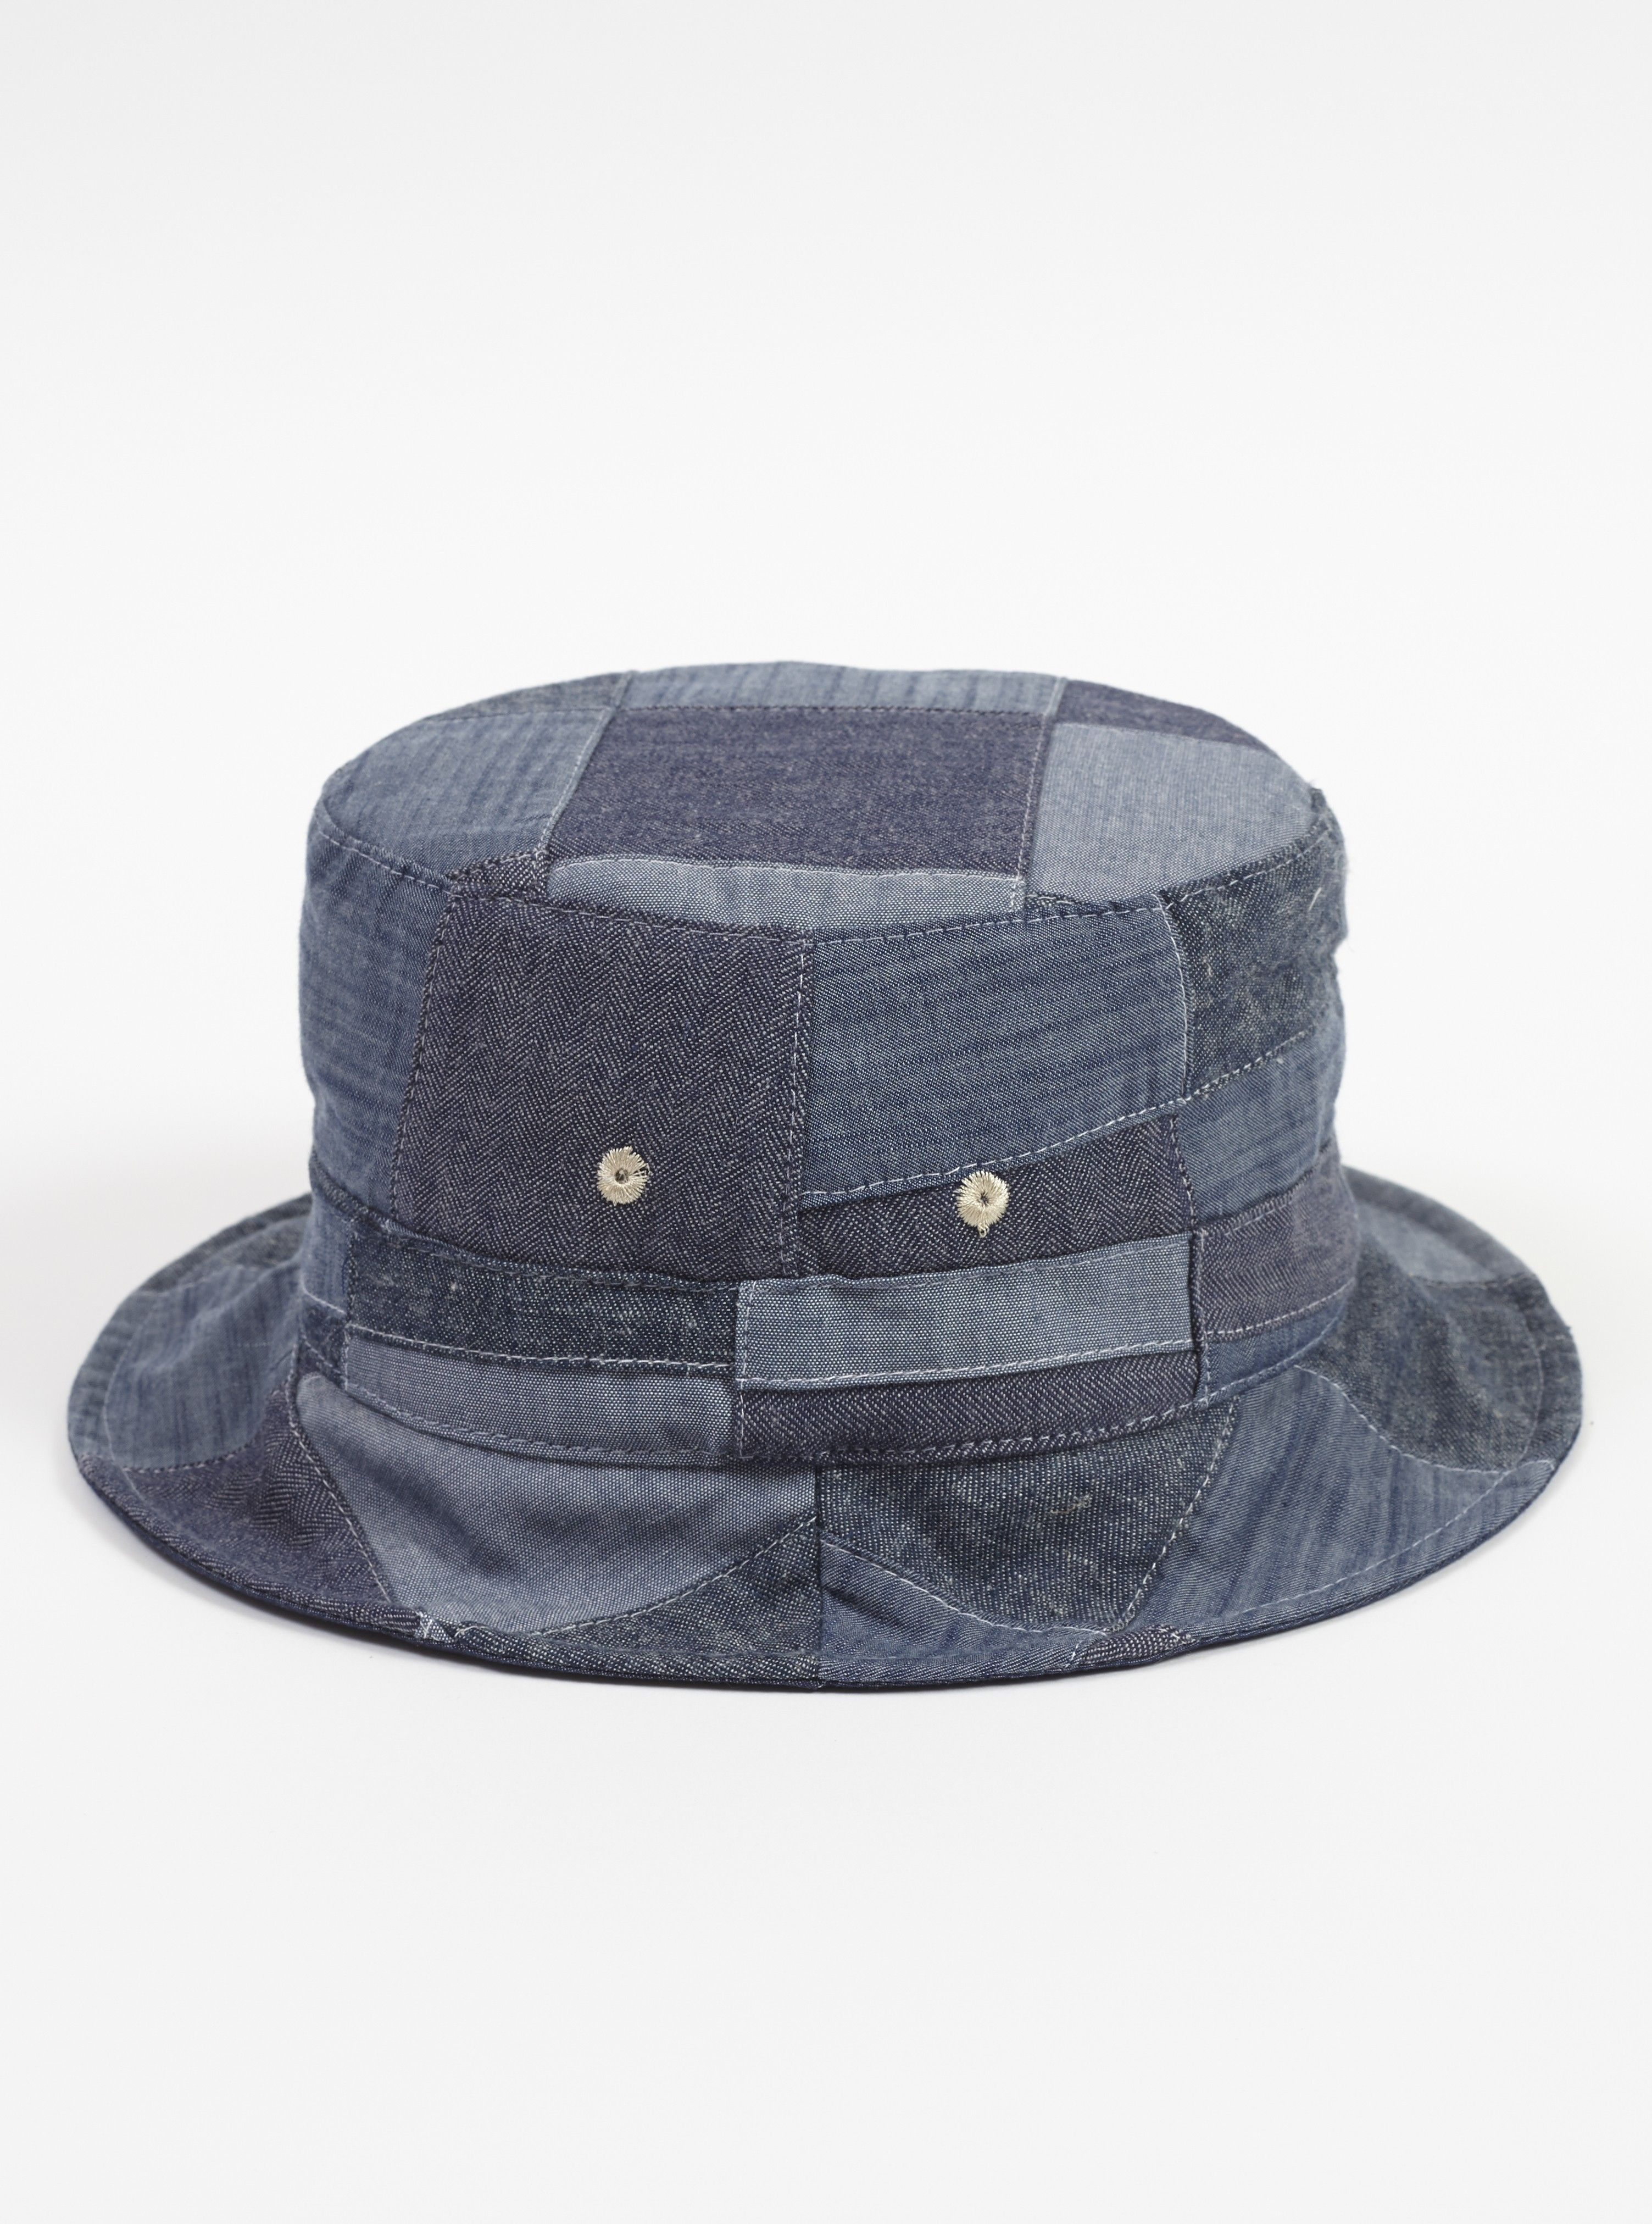 Universal Works Bucket Hat in Indigo Chambray Patchwork  7b00f393d5d